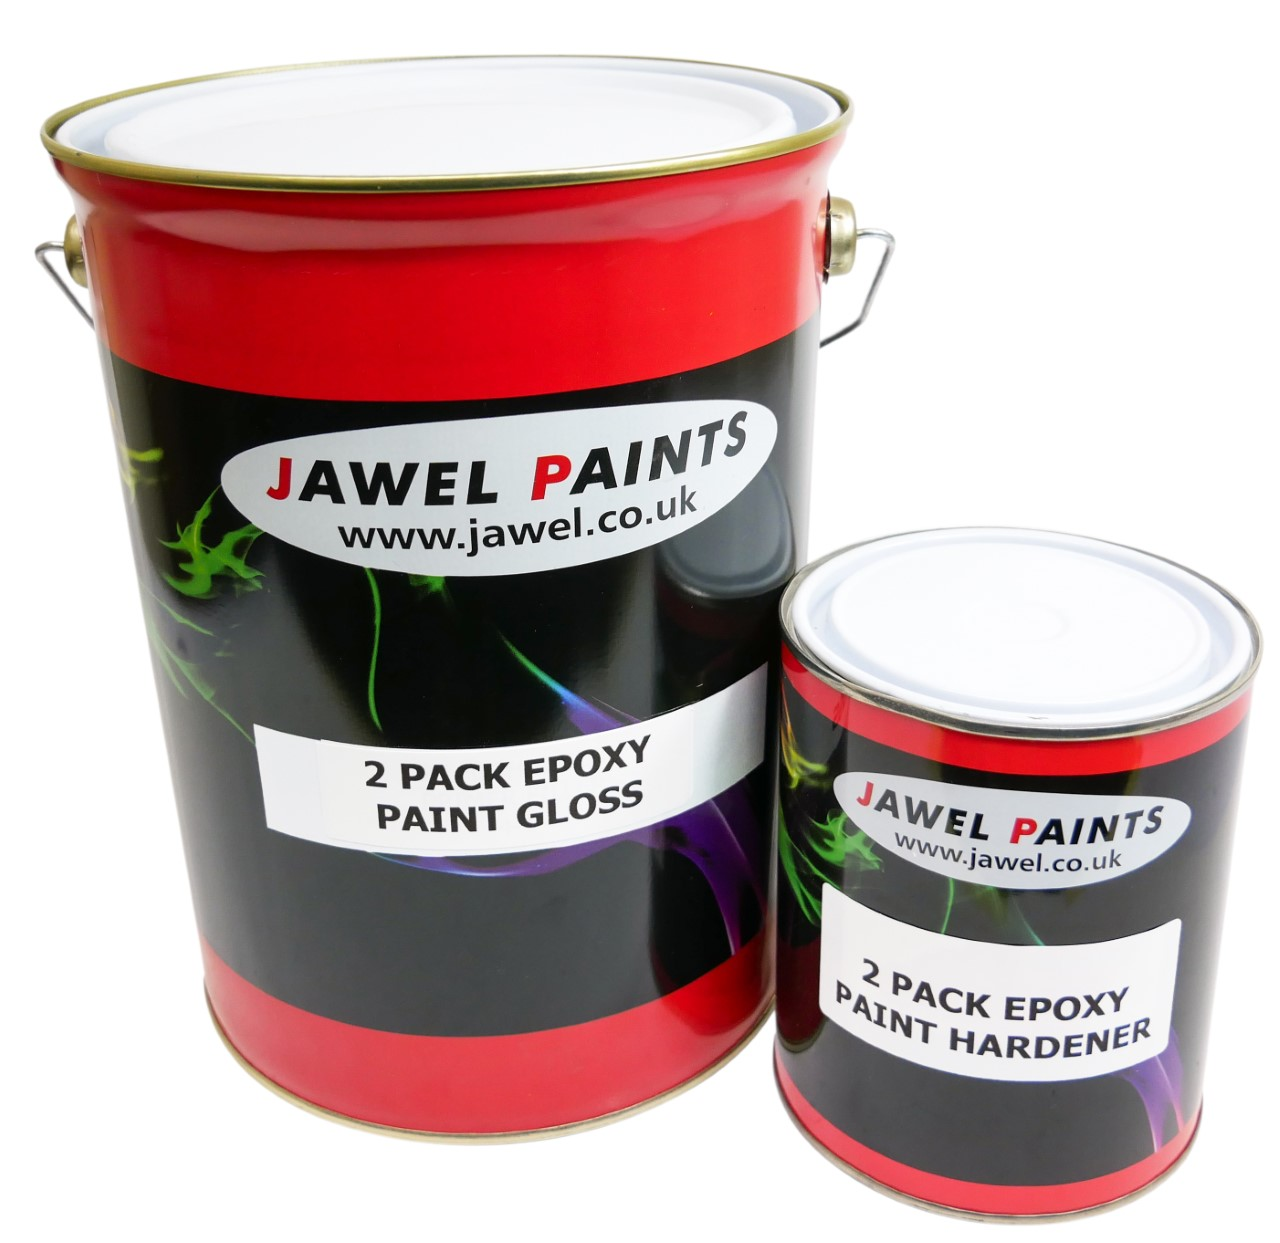 2 Pack Epoxy Paint